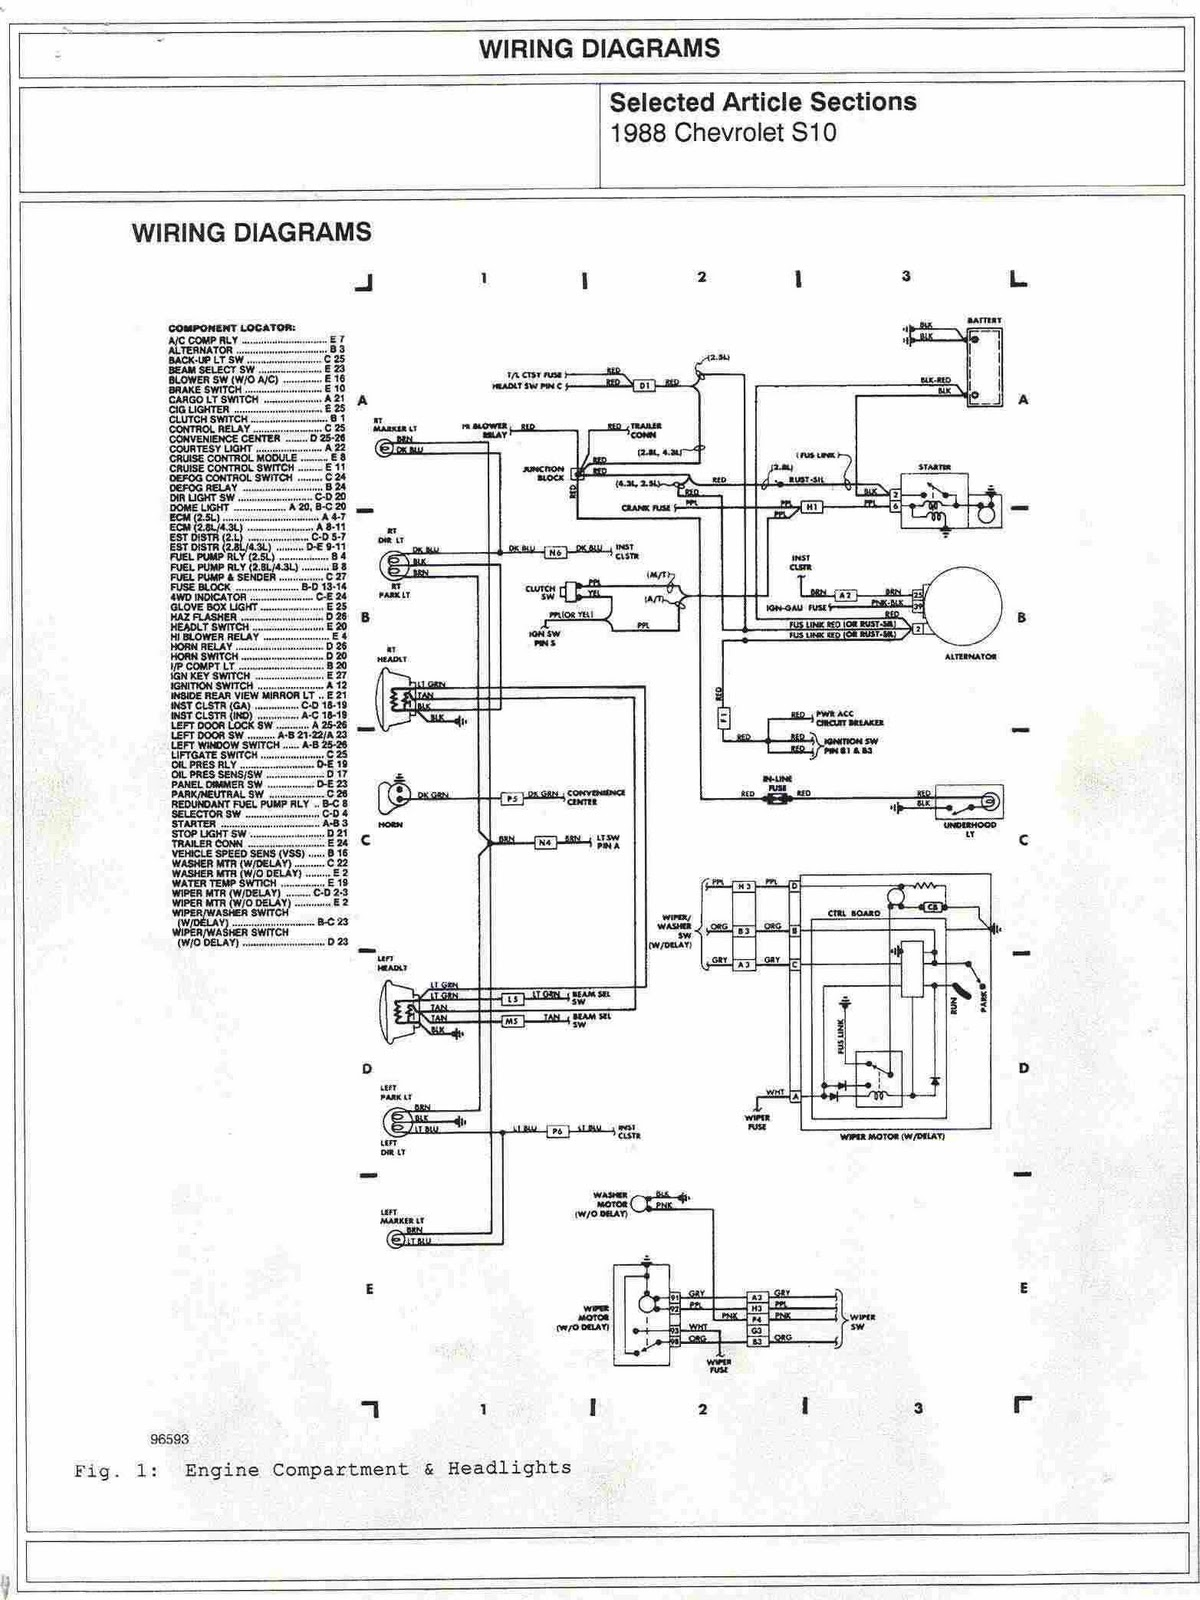 s engine diagram s10 wiring diagram s10 image wiring diagram wiring diagram 1988 chevy s10 fuel pump the wiring